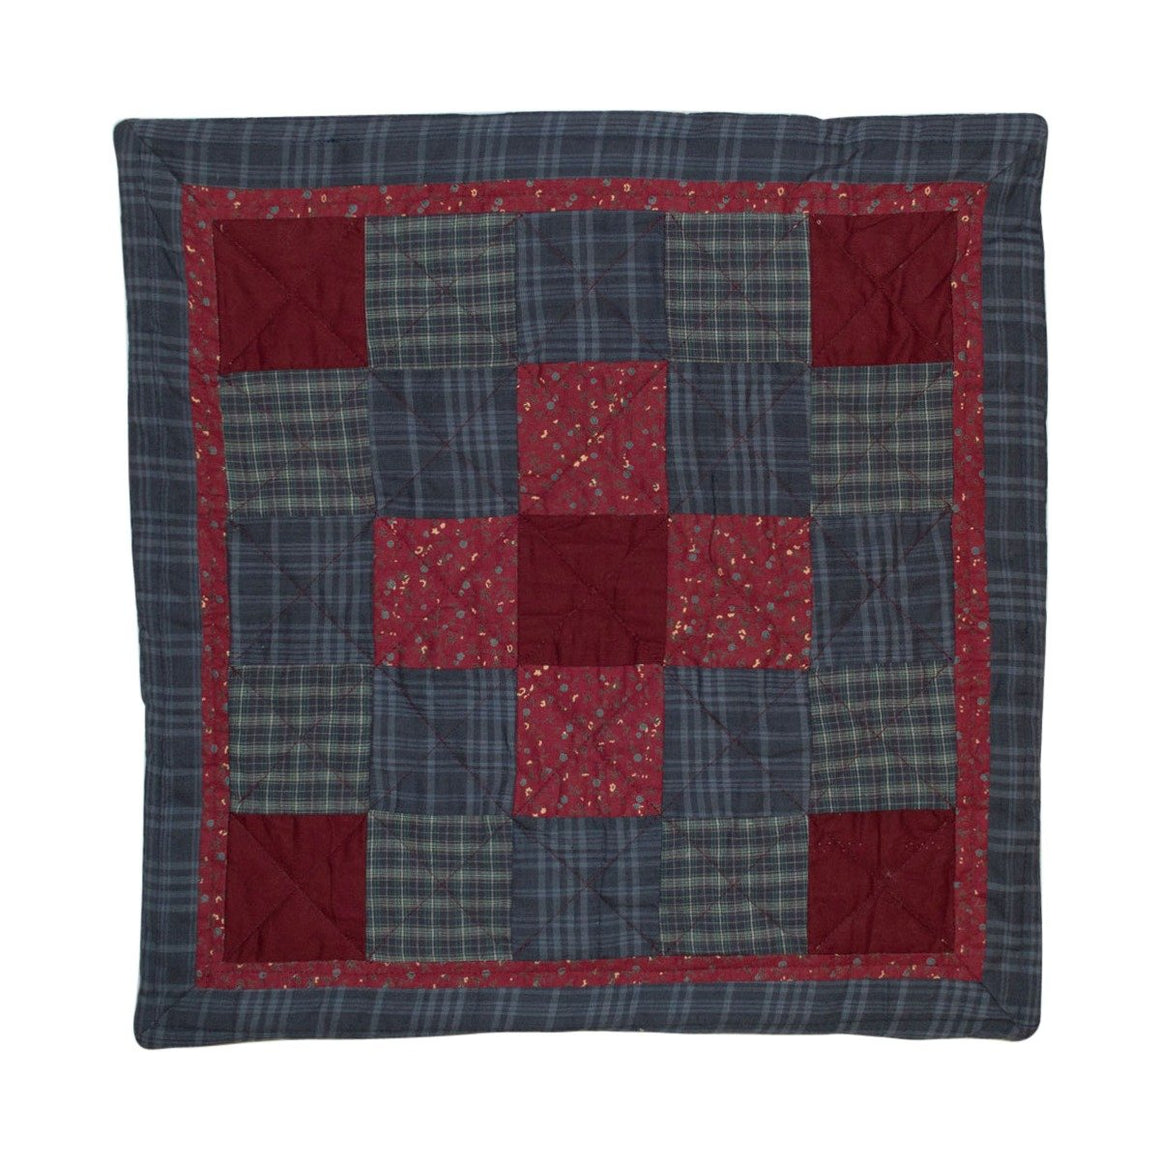 Huckleberry Hill Toss Pillow